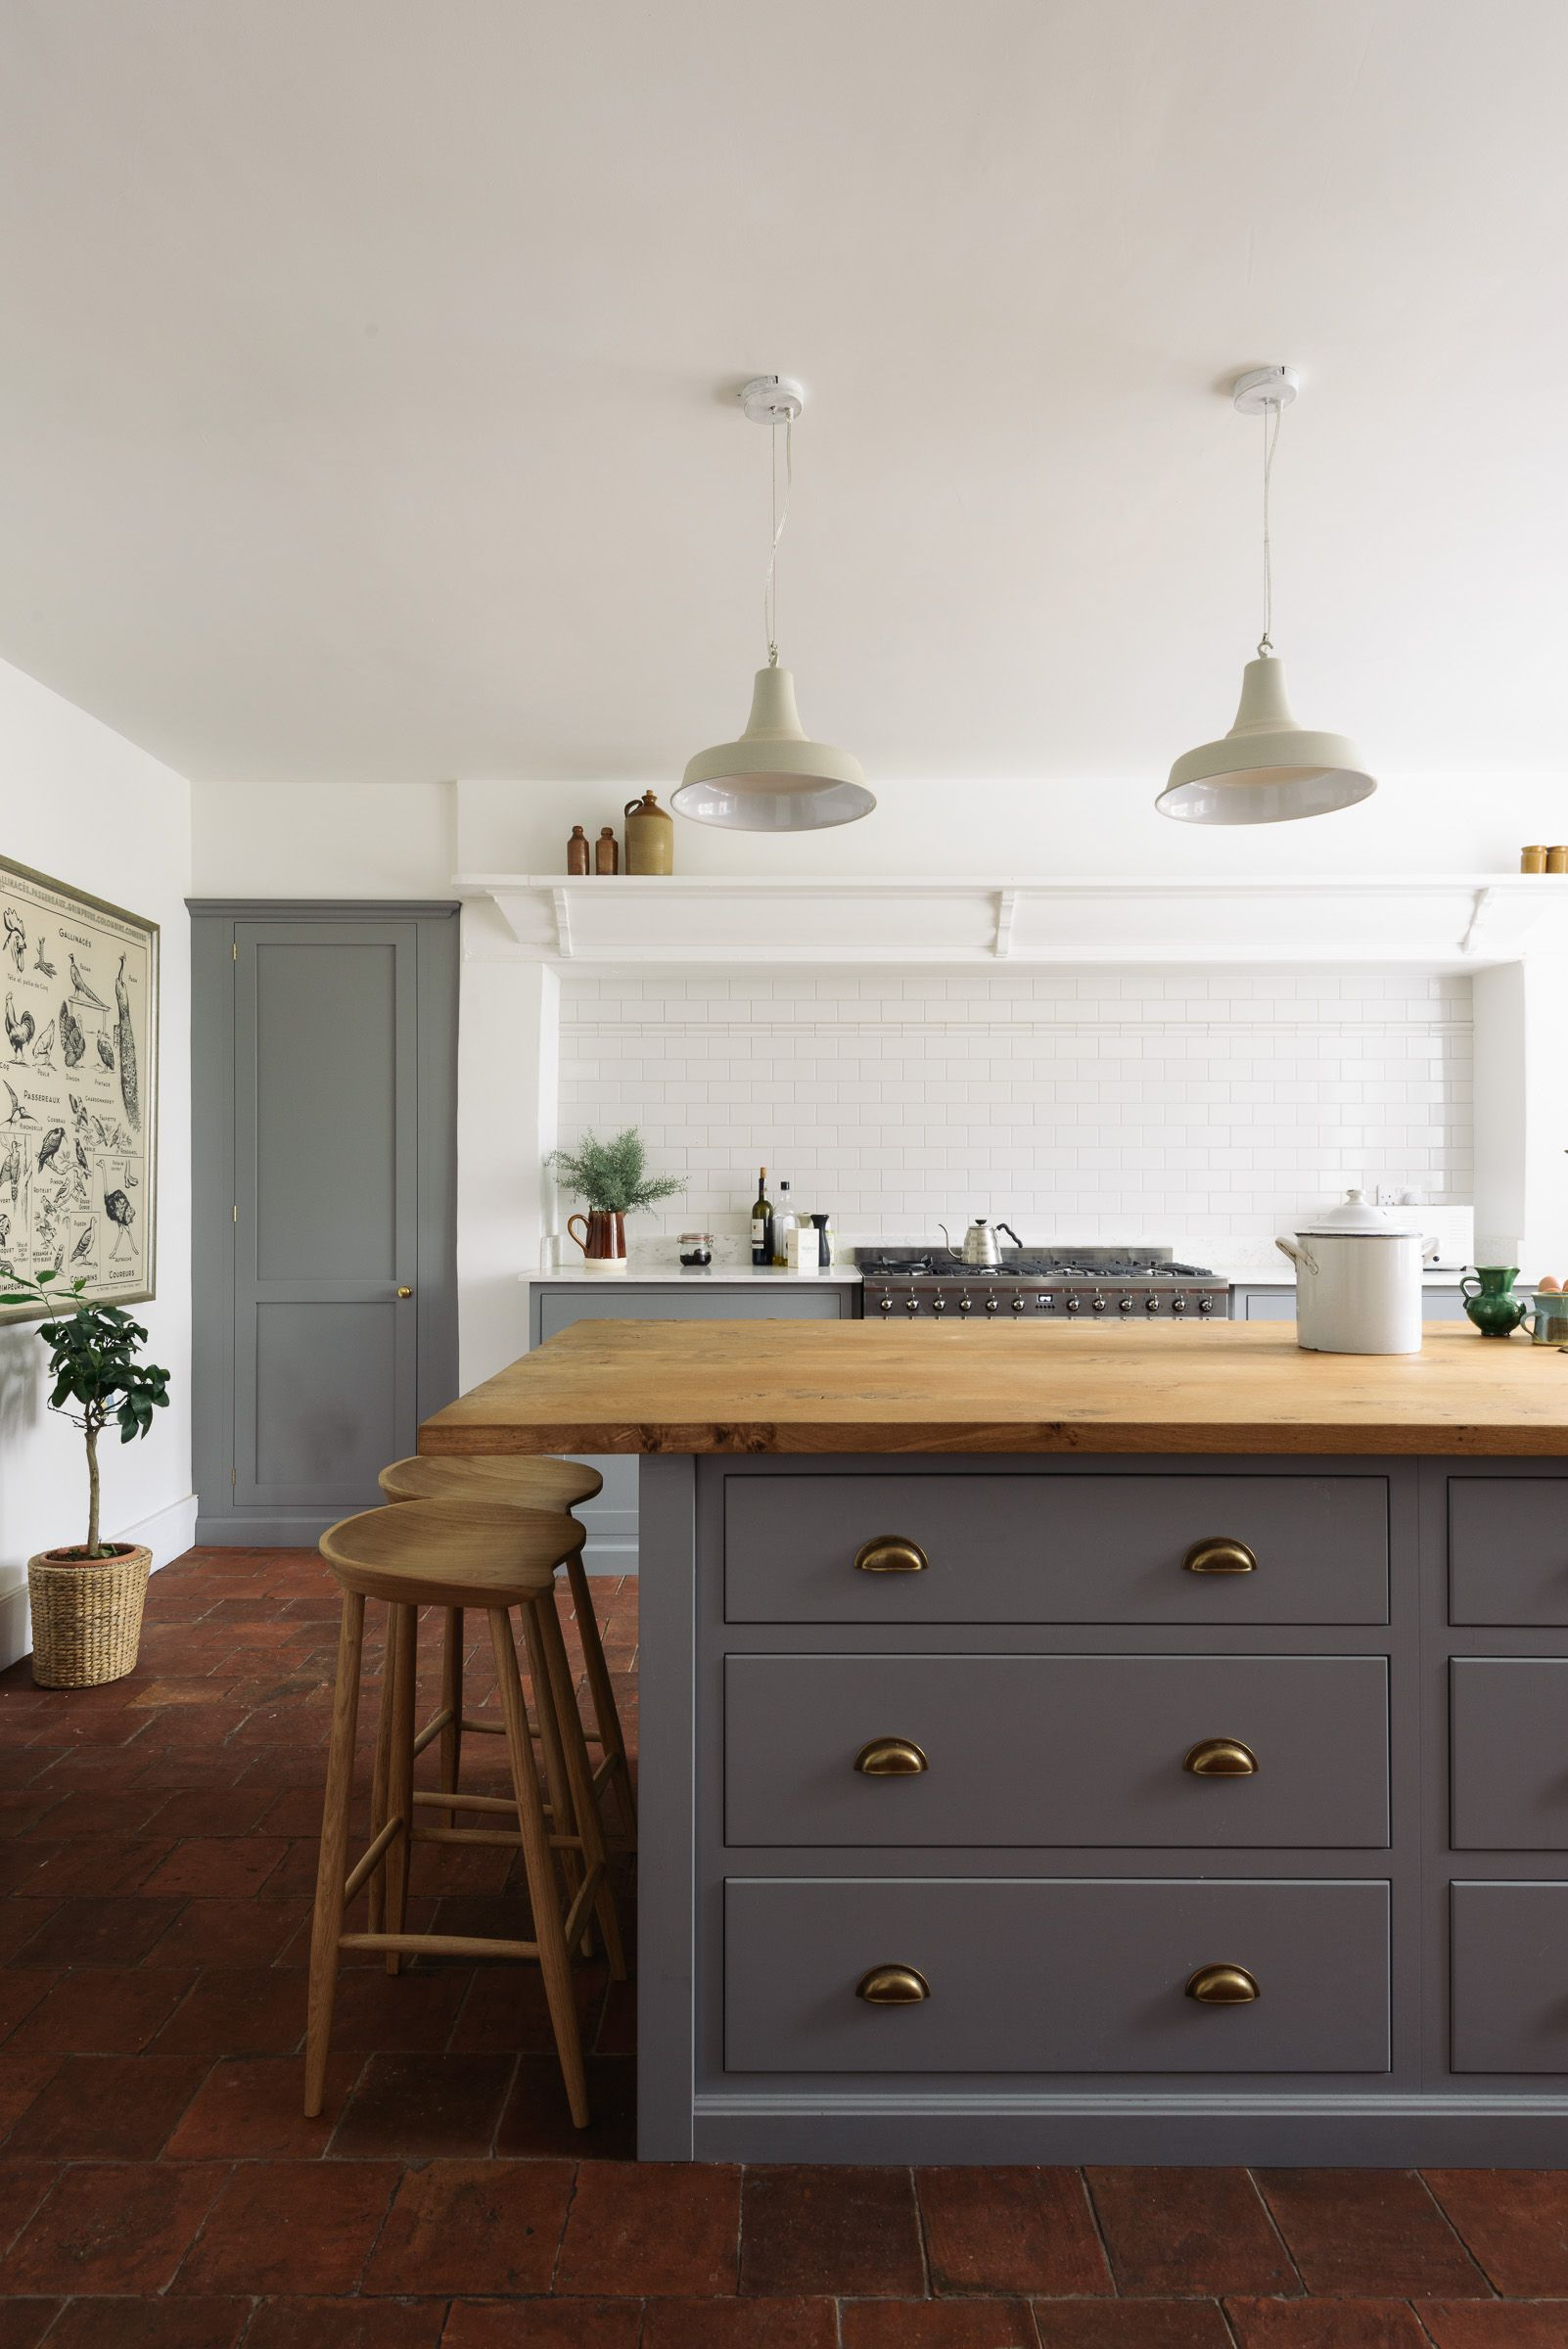 Our Overseas Guide Explains The Ins And Outs Of Getting A Devol Kitchen If You Live Outside The Uk W Kitchen Cabinet Styles Kitchen Style Kitchen Inspirations